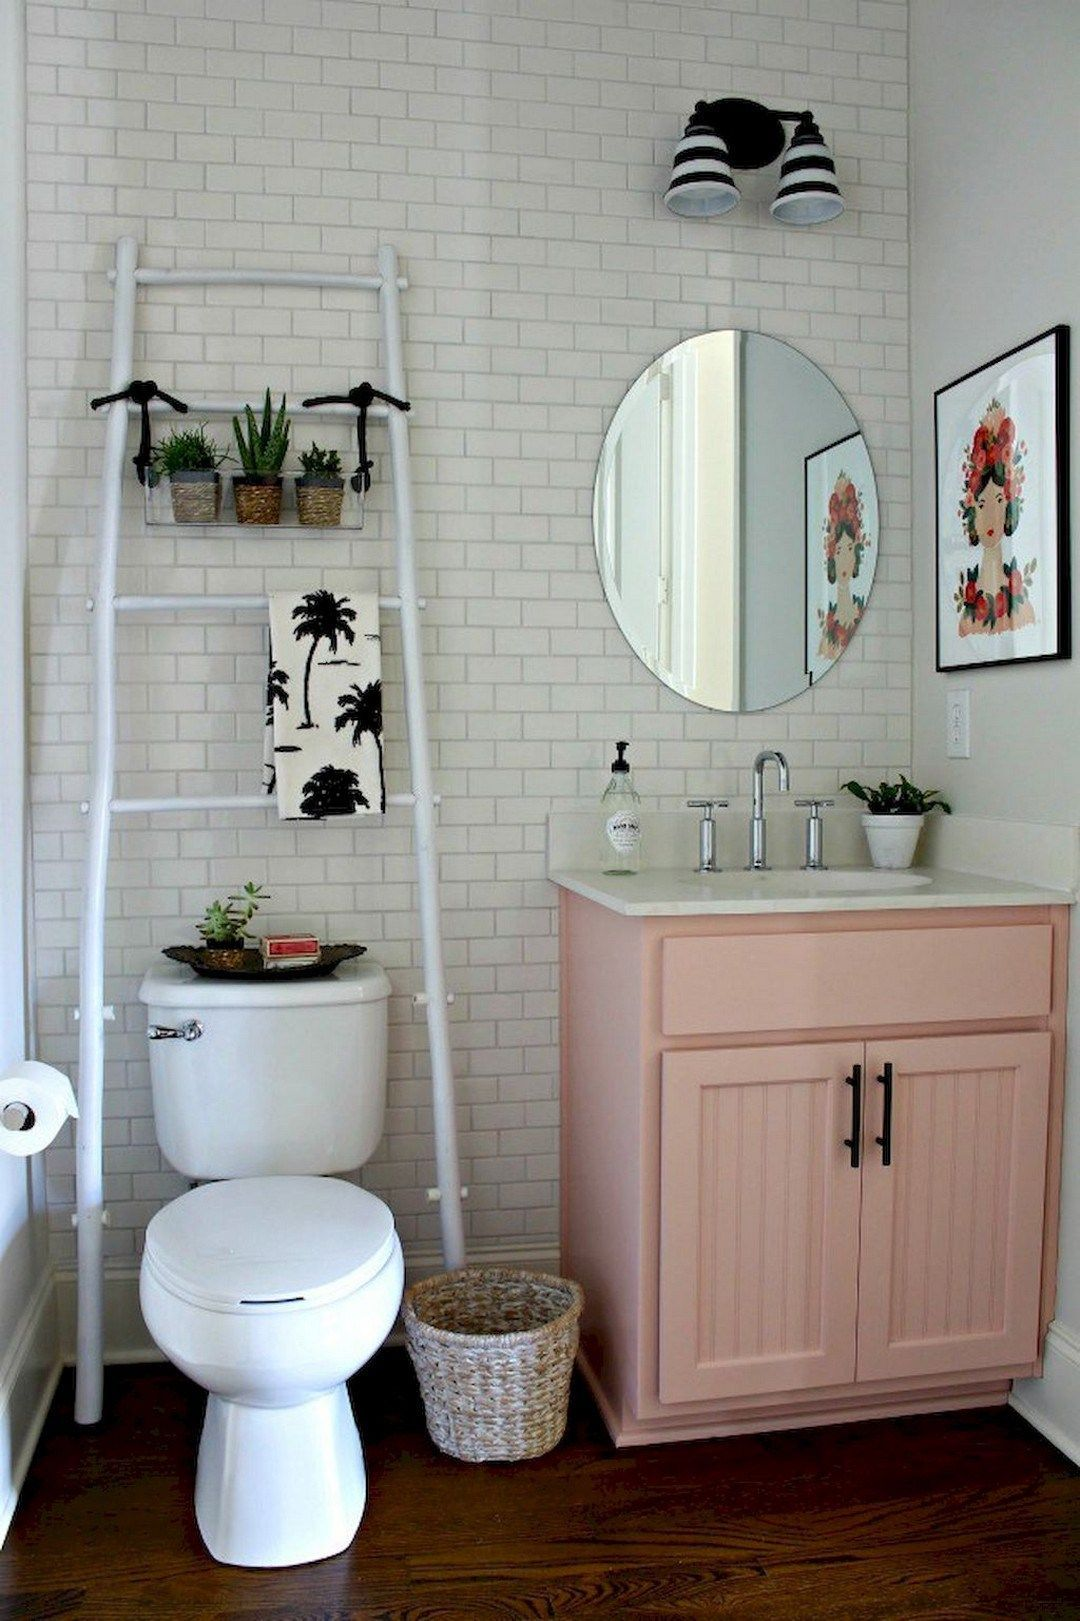 Cozy Small Apartment Decorating Ideas On A Budget 34 Small Bathroom Decor Small Apartment Decorating Cute Bathroom Ideas